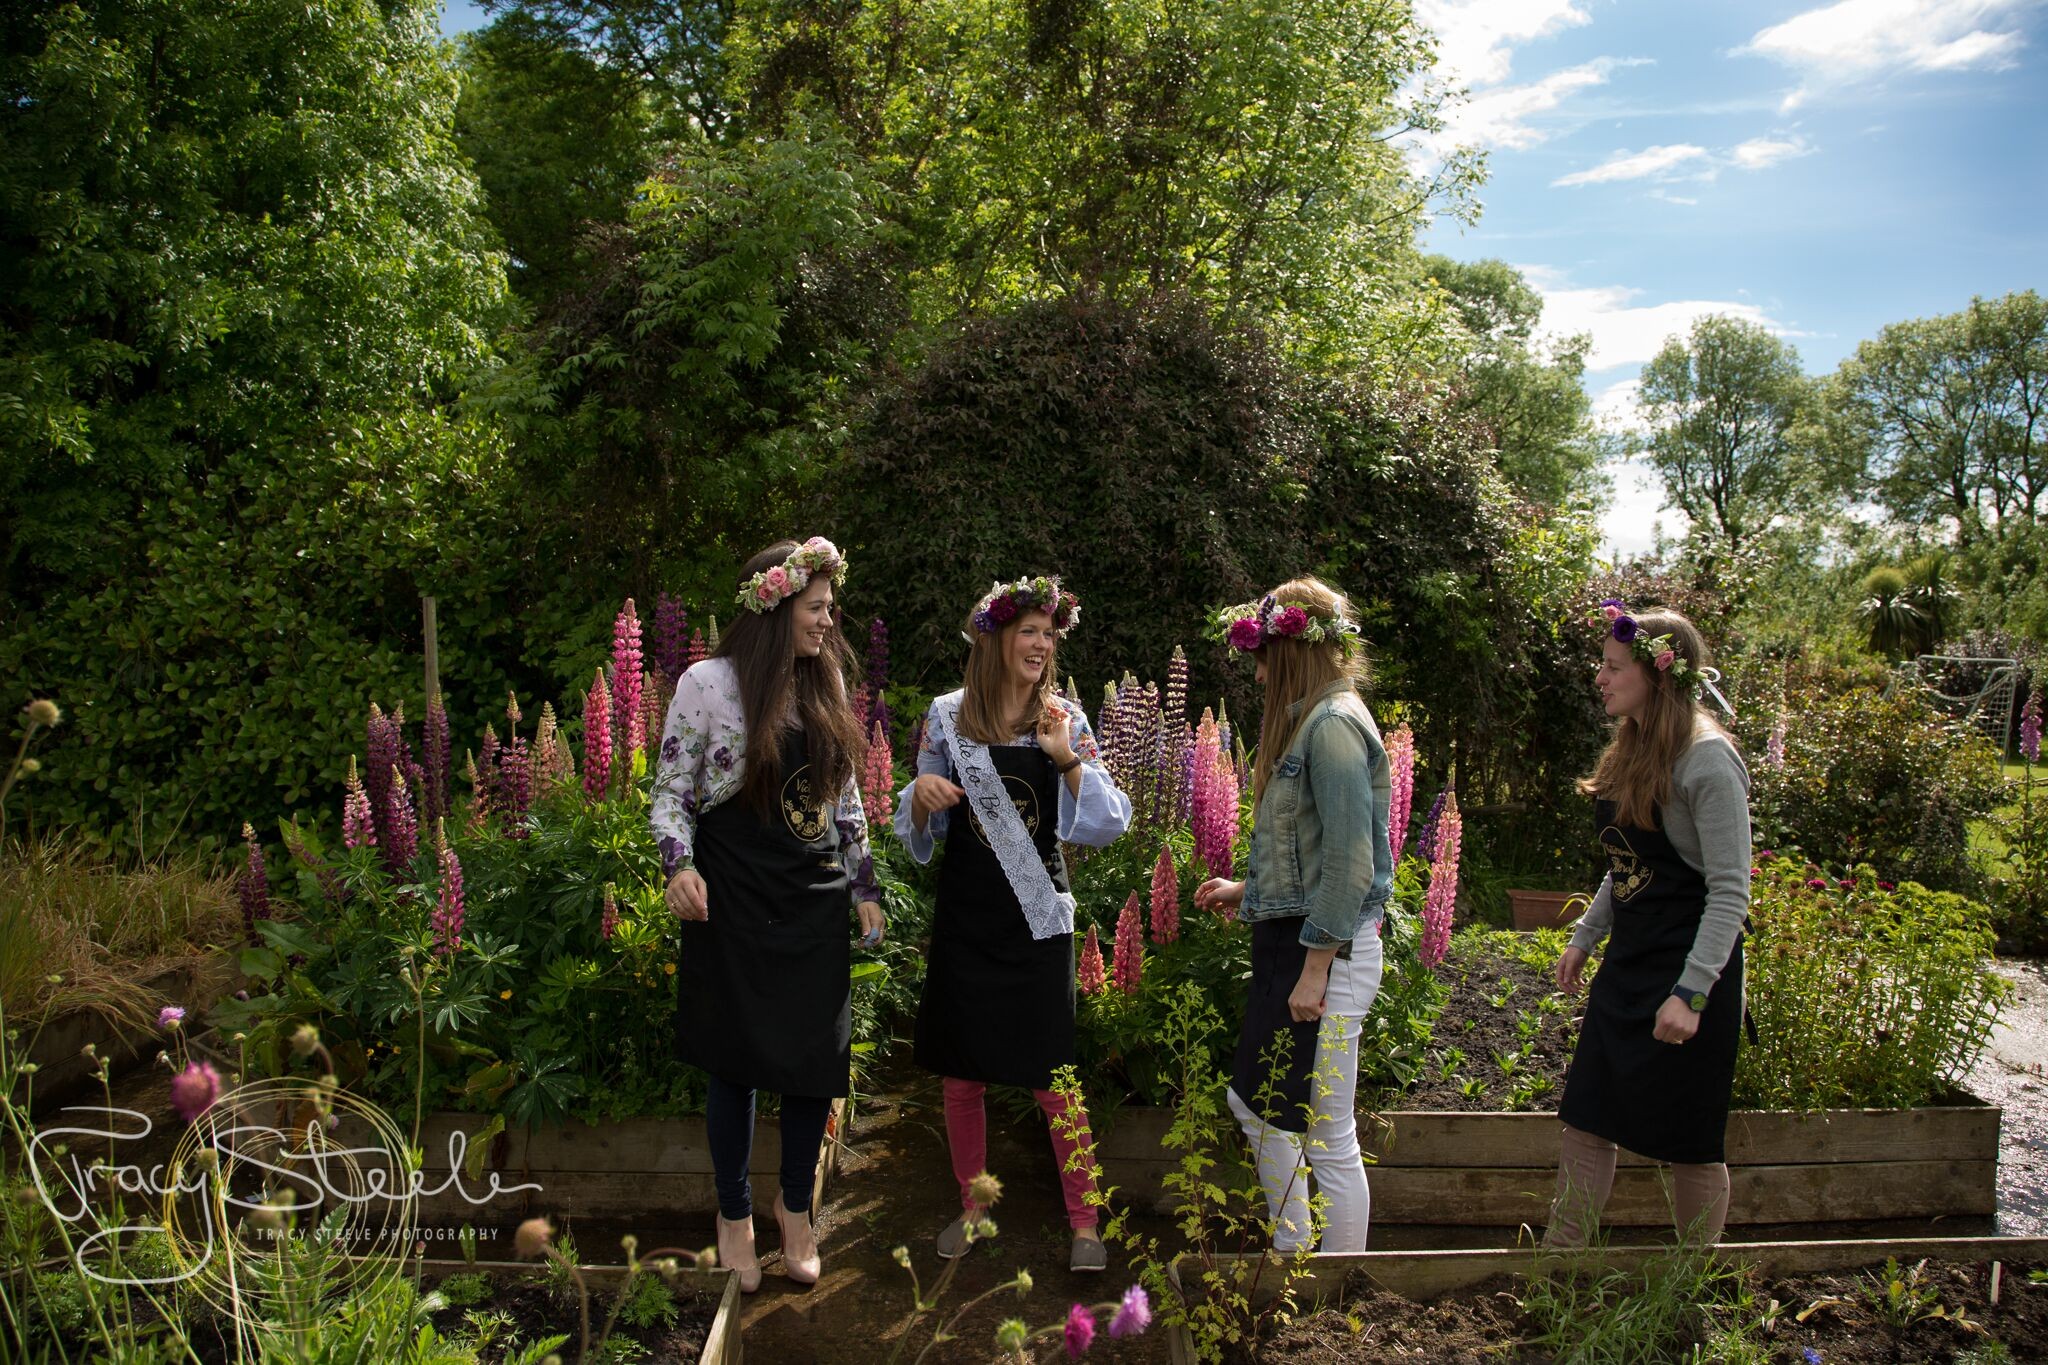 Flower Crown Workshops - We also offer Flower Crown workshops which are proving very popular for hen parties and team building outings.